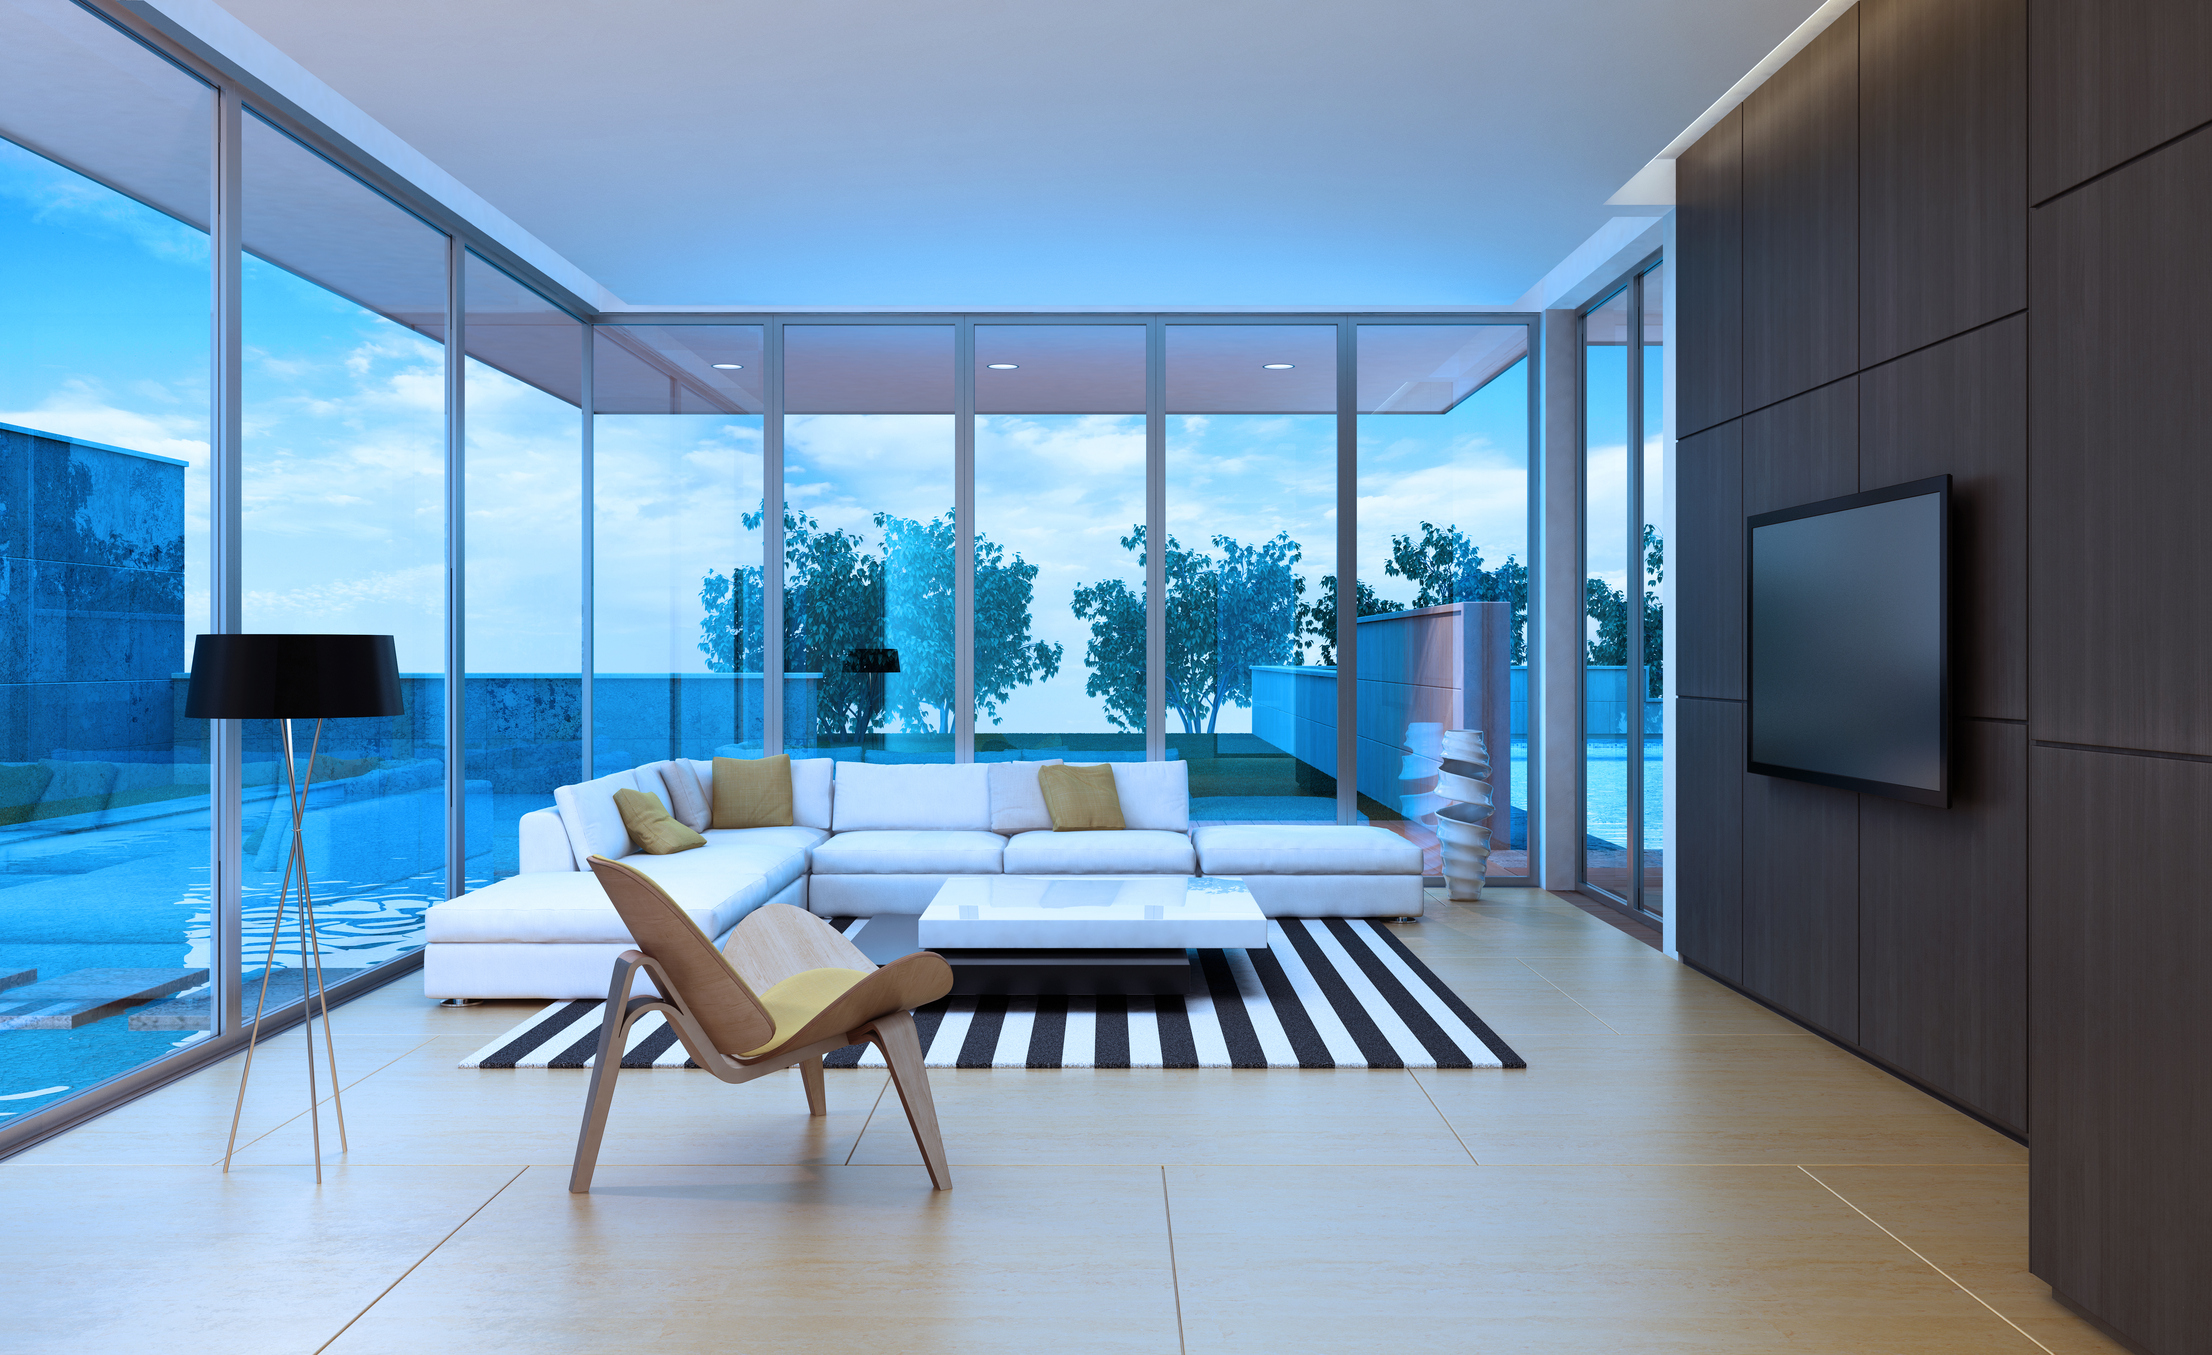 Real Estate Photography that sells - Stunning high impact real estate photography